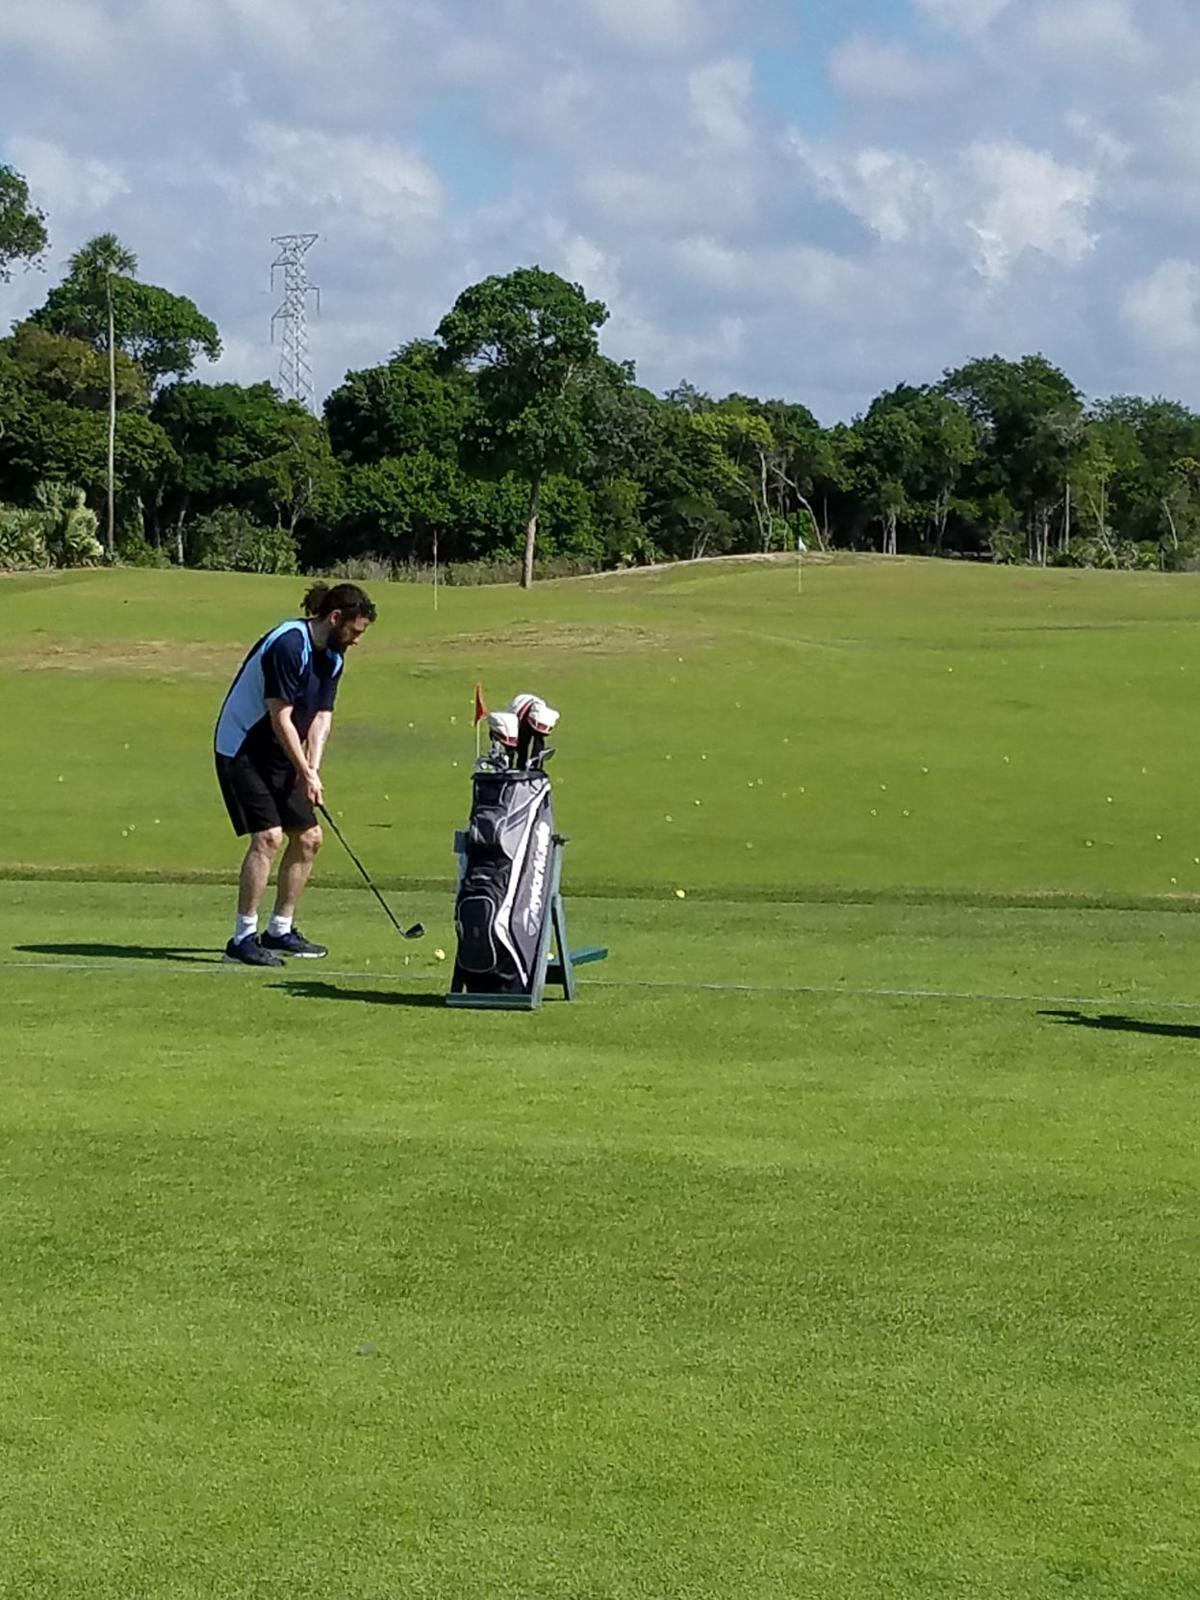 Golf lovers will love the top rated course at Riviera Maya Golf Club.